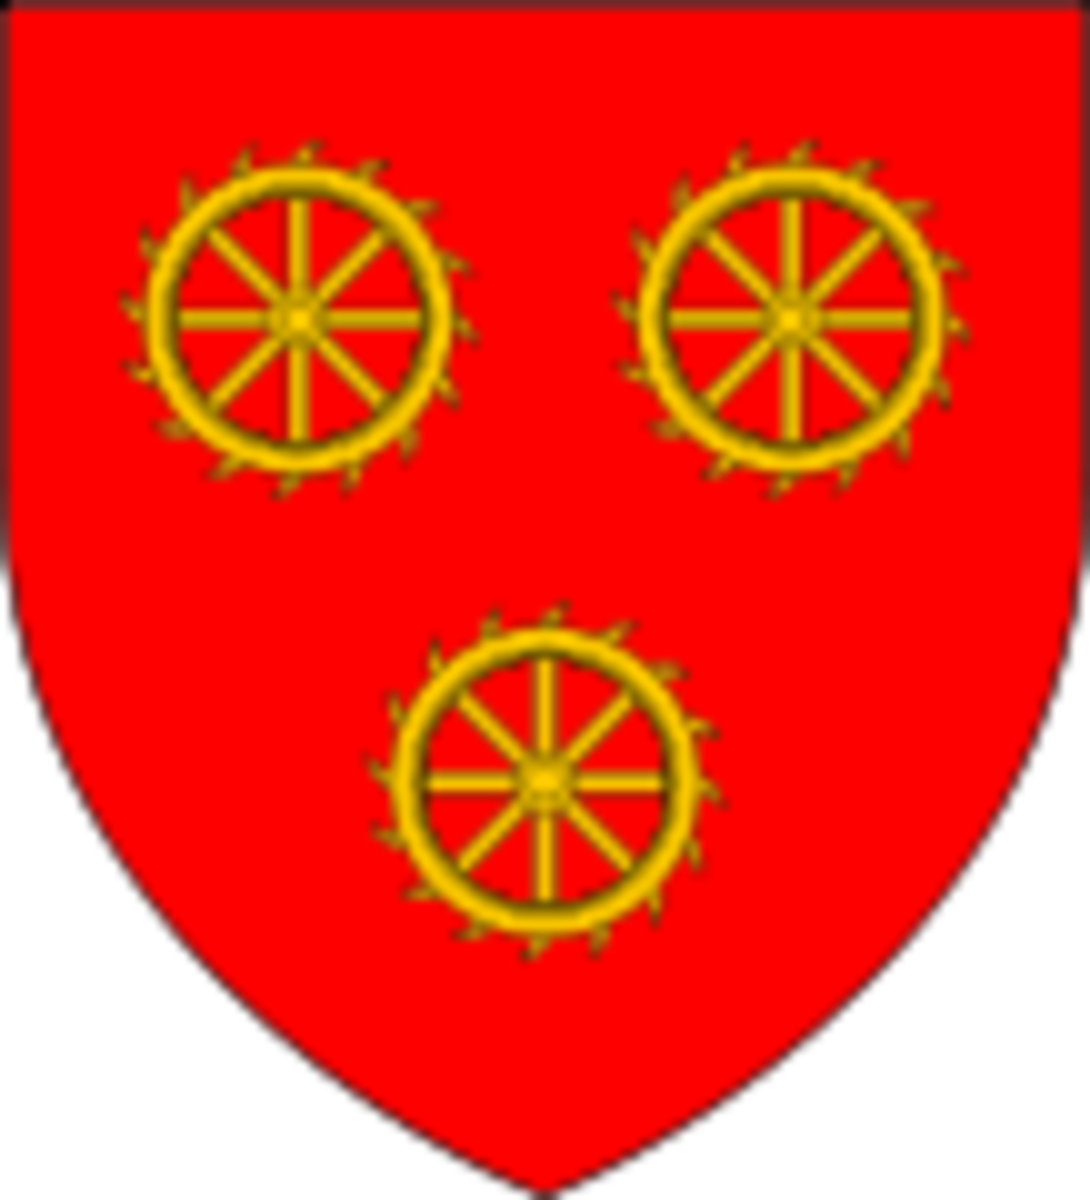 Katherine Swynford's Coat of Arms after her marriage to John of Gaunt.